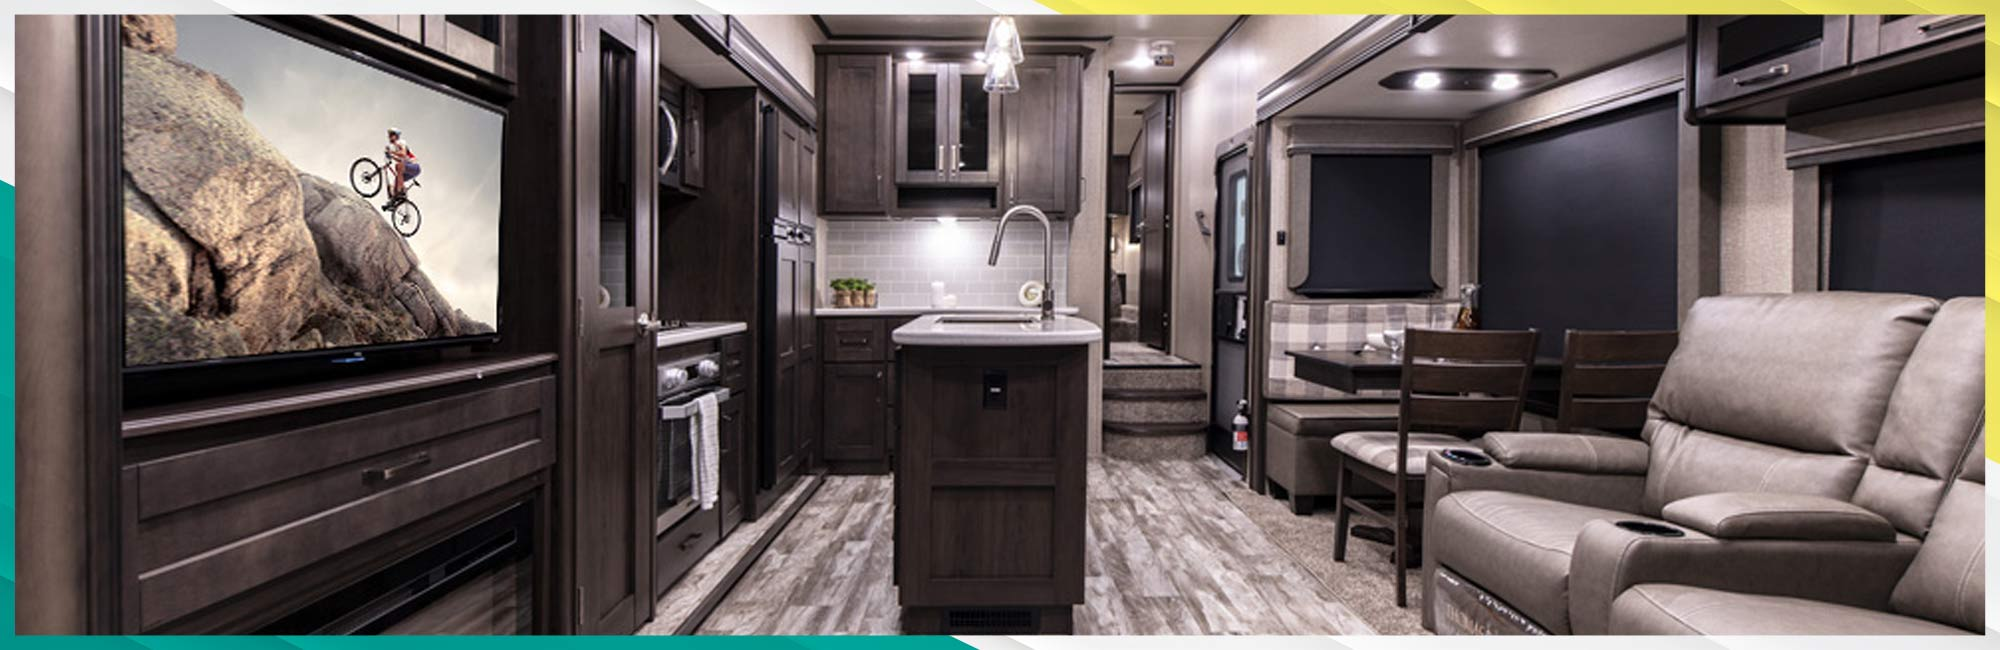 best RV for a family to live in